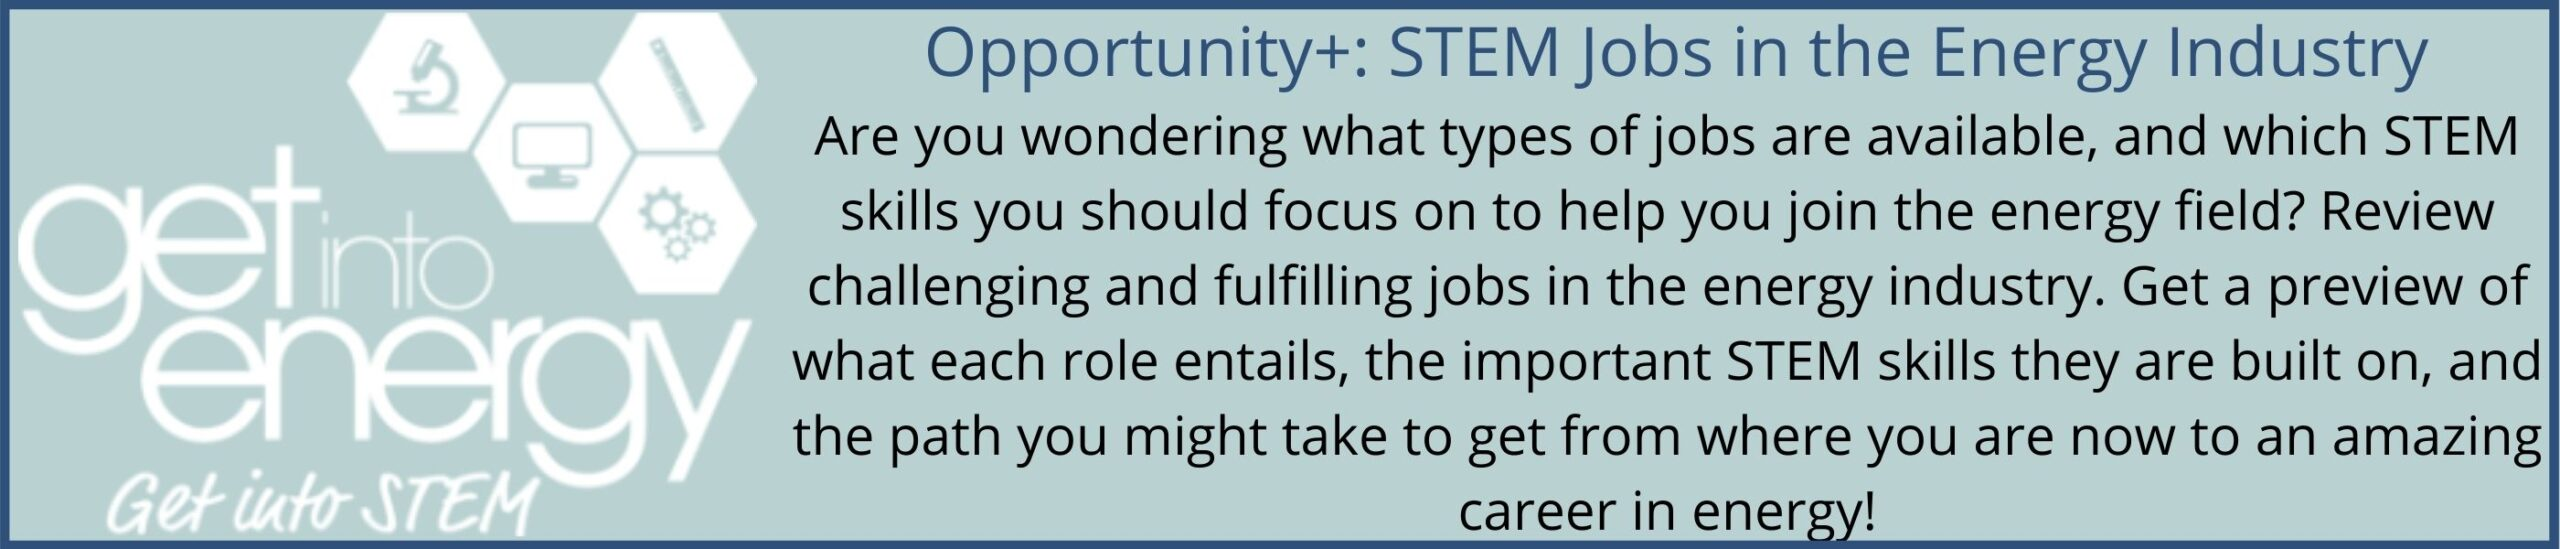 Get Into Energy - STEM Jobs in the Energy Industry